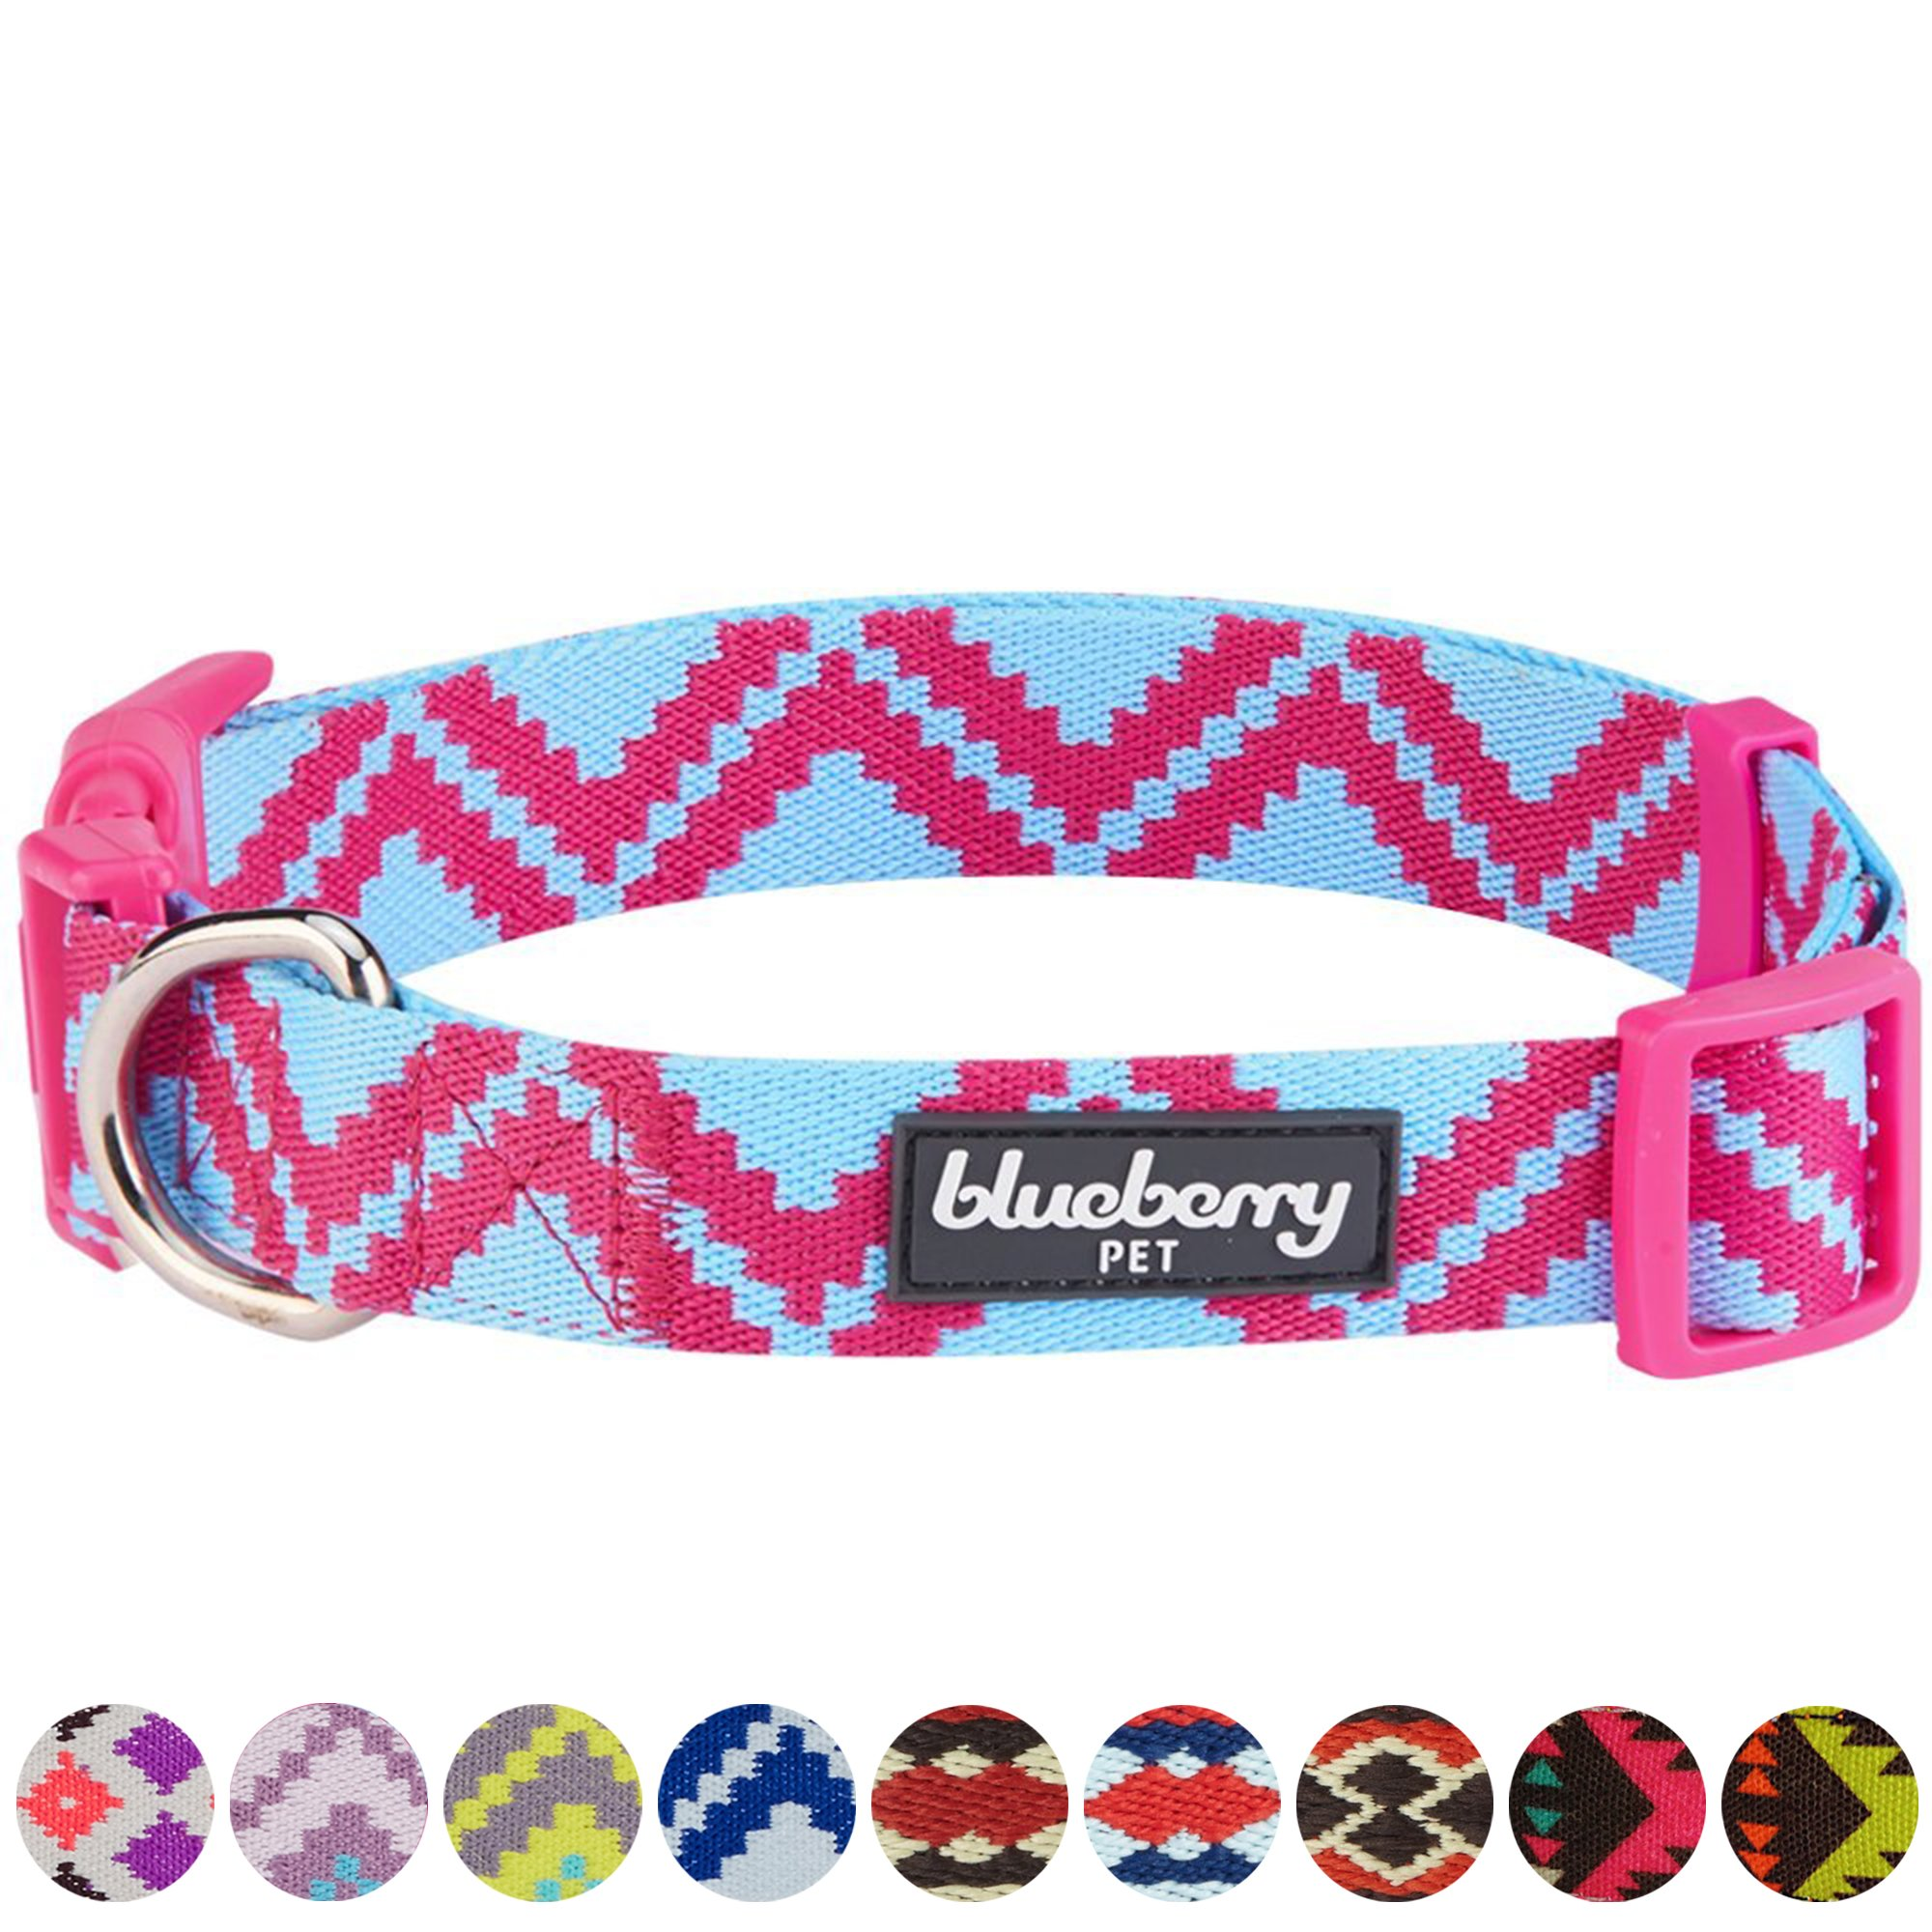 Blueberry Pet 10 Colors Tribal Pattern Inspired Stunning Zigzag Dog Collar, Cerise Pink, Large, Neck 18''-26'', Adjustable Collars for Dogs